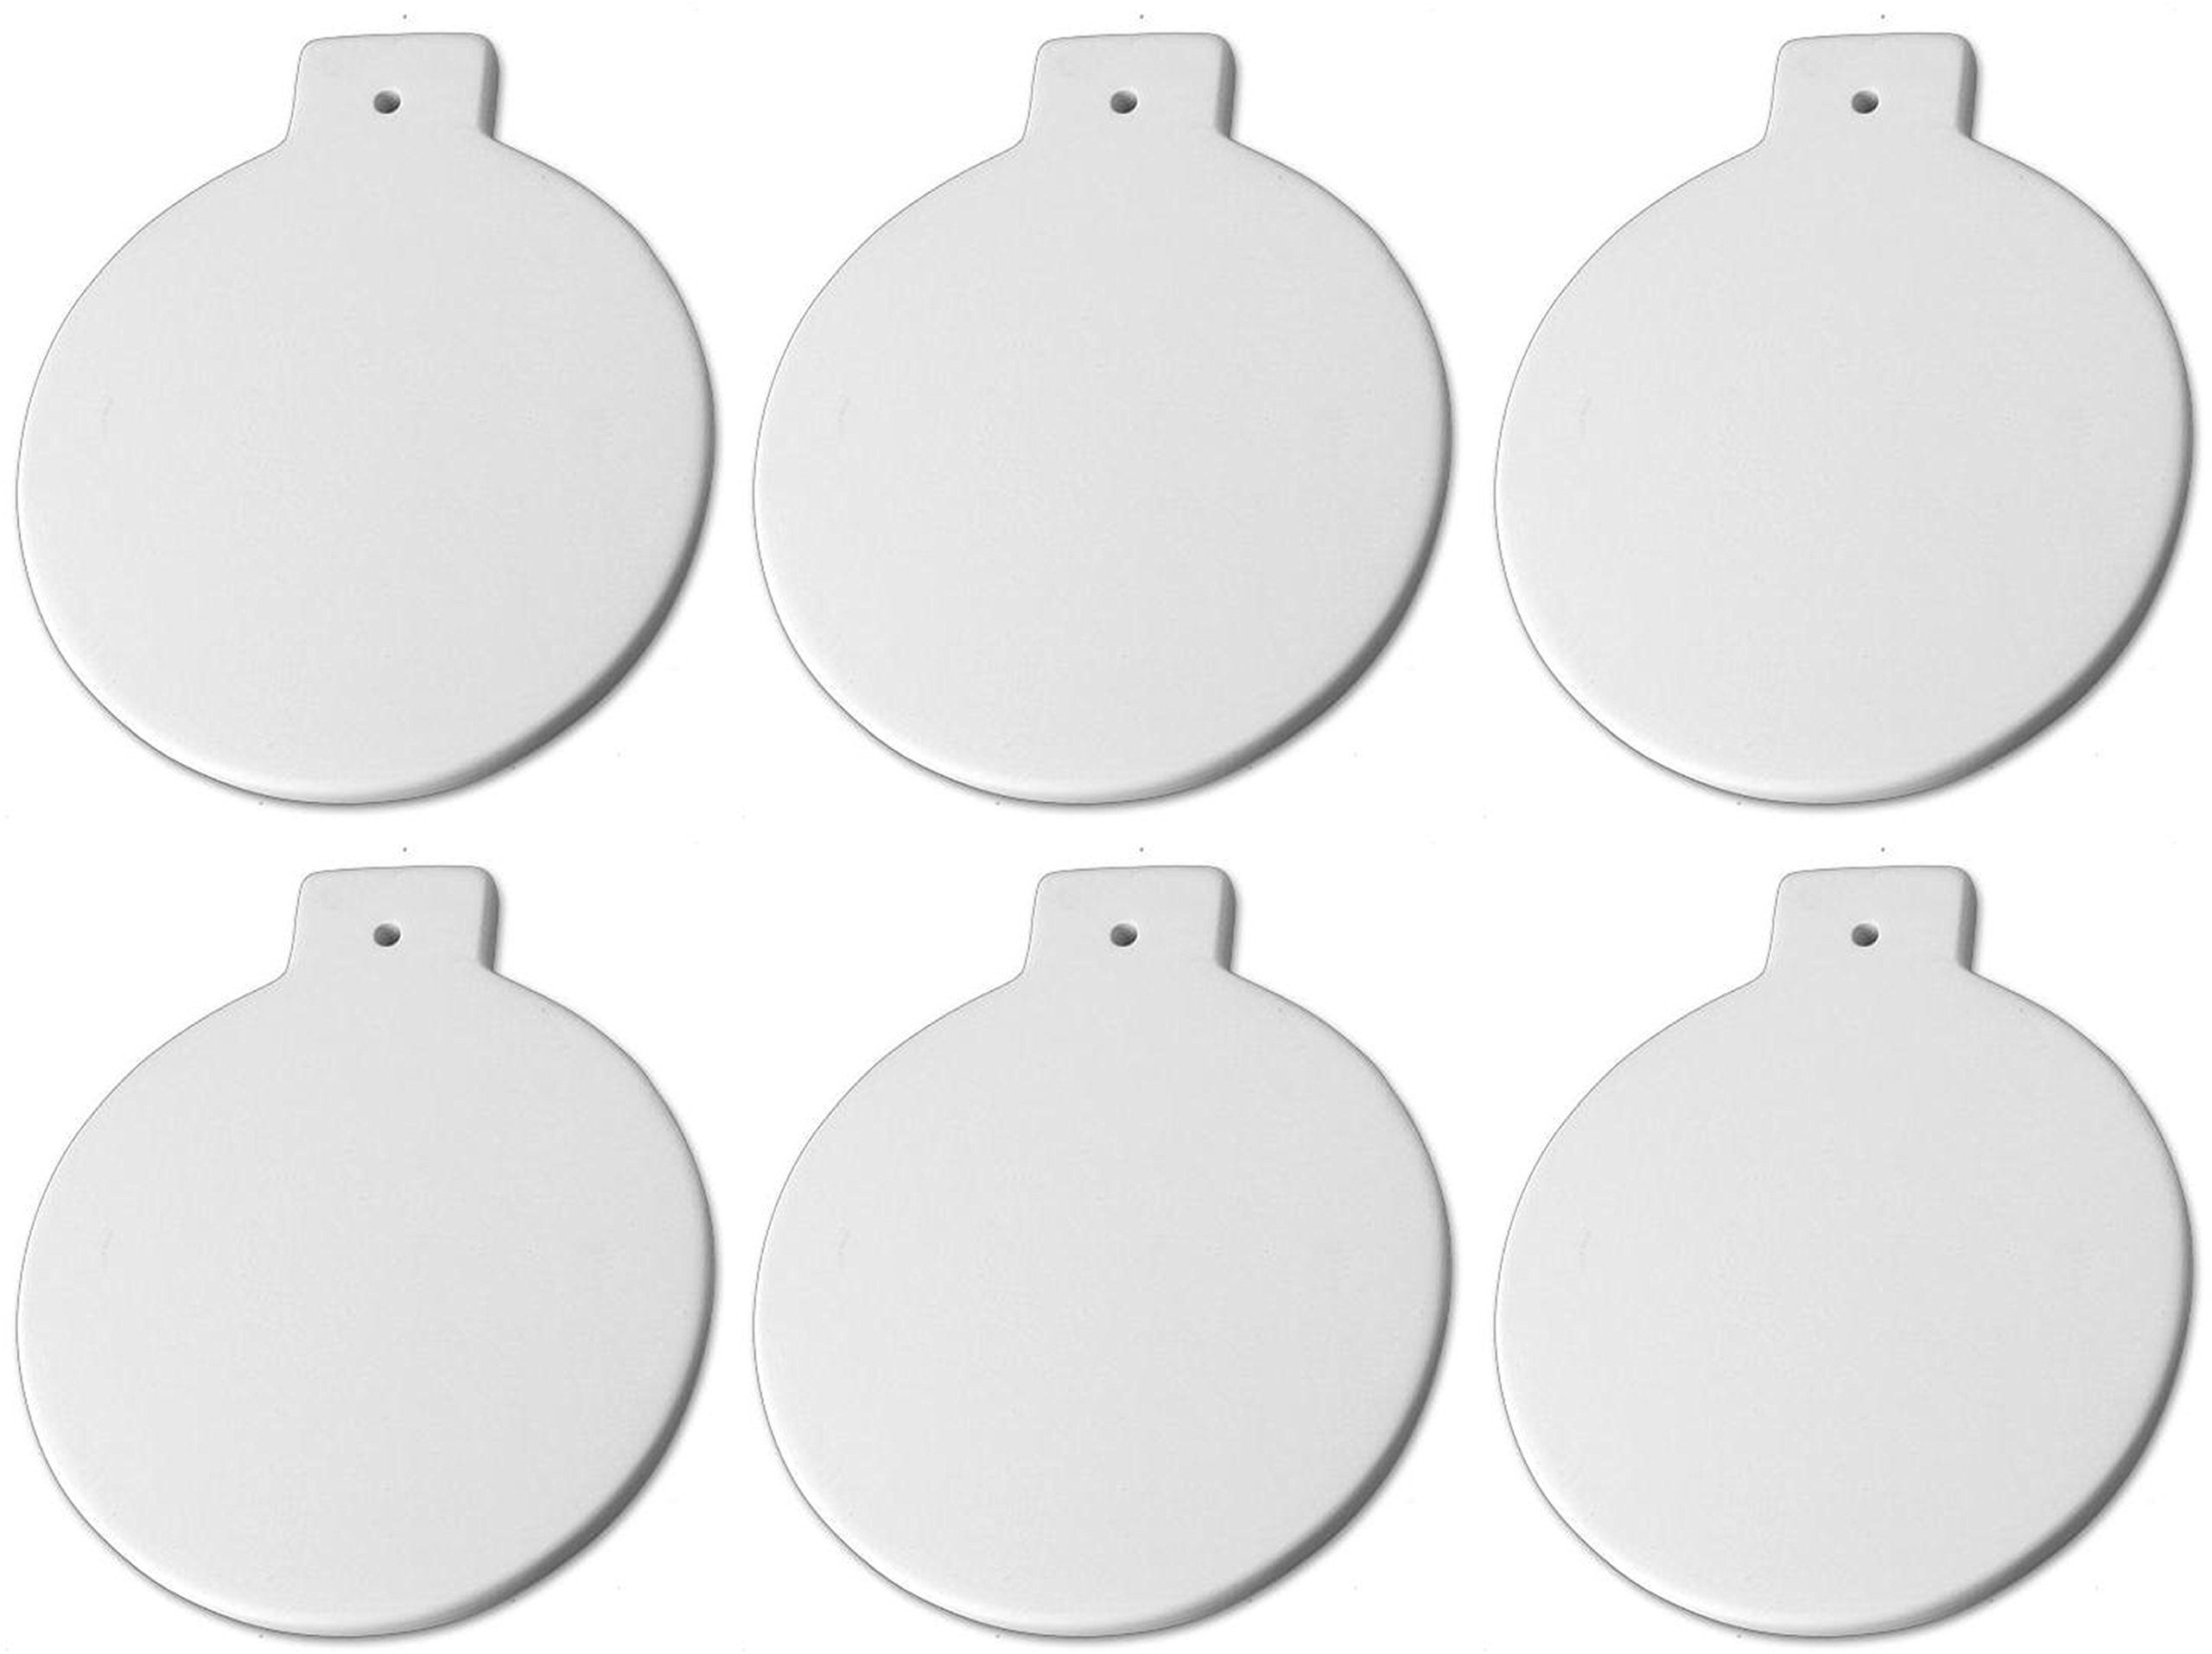 New Hampshire Craftworks Christmas Ball Ornaments - Set of 6 - Host Your Own Ceramic Painting Party by New Hampshire Craftworks